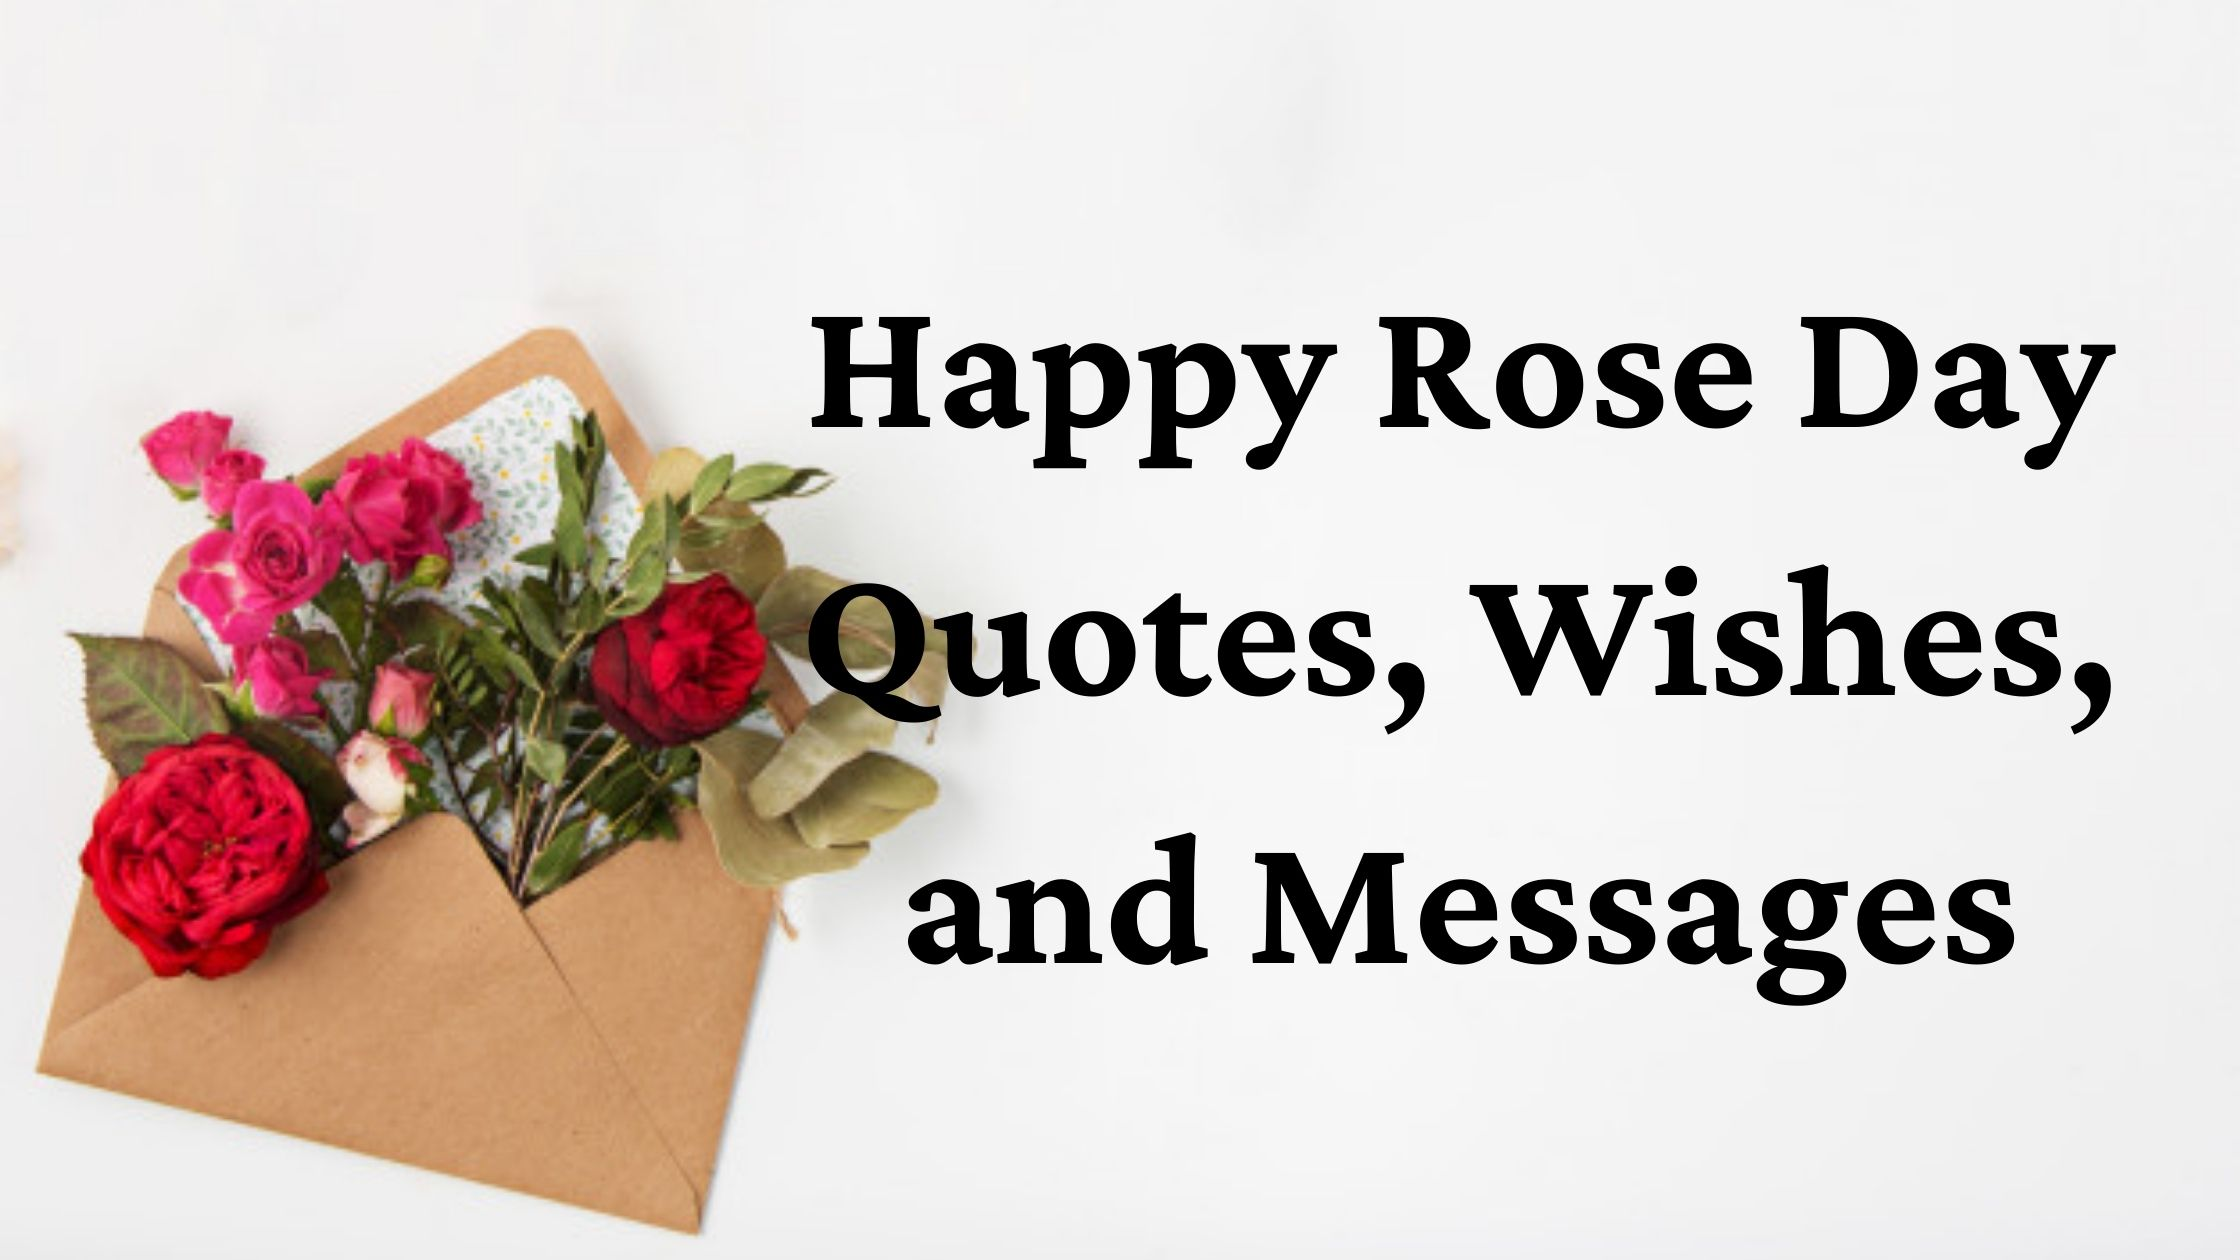 Happy Rose Day Quotes, Wishes, and Messages